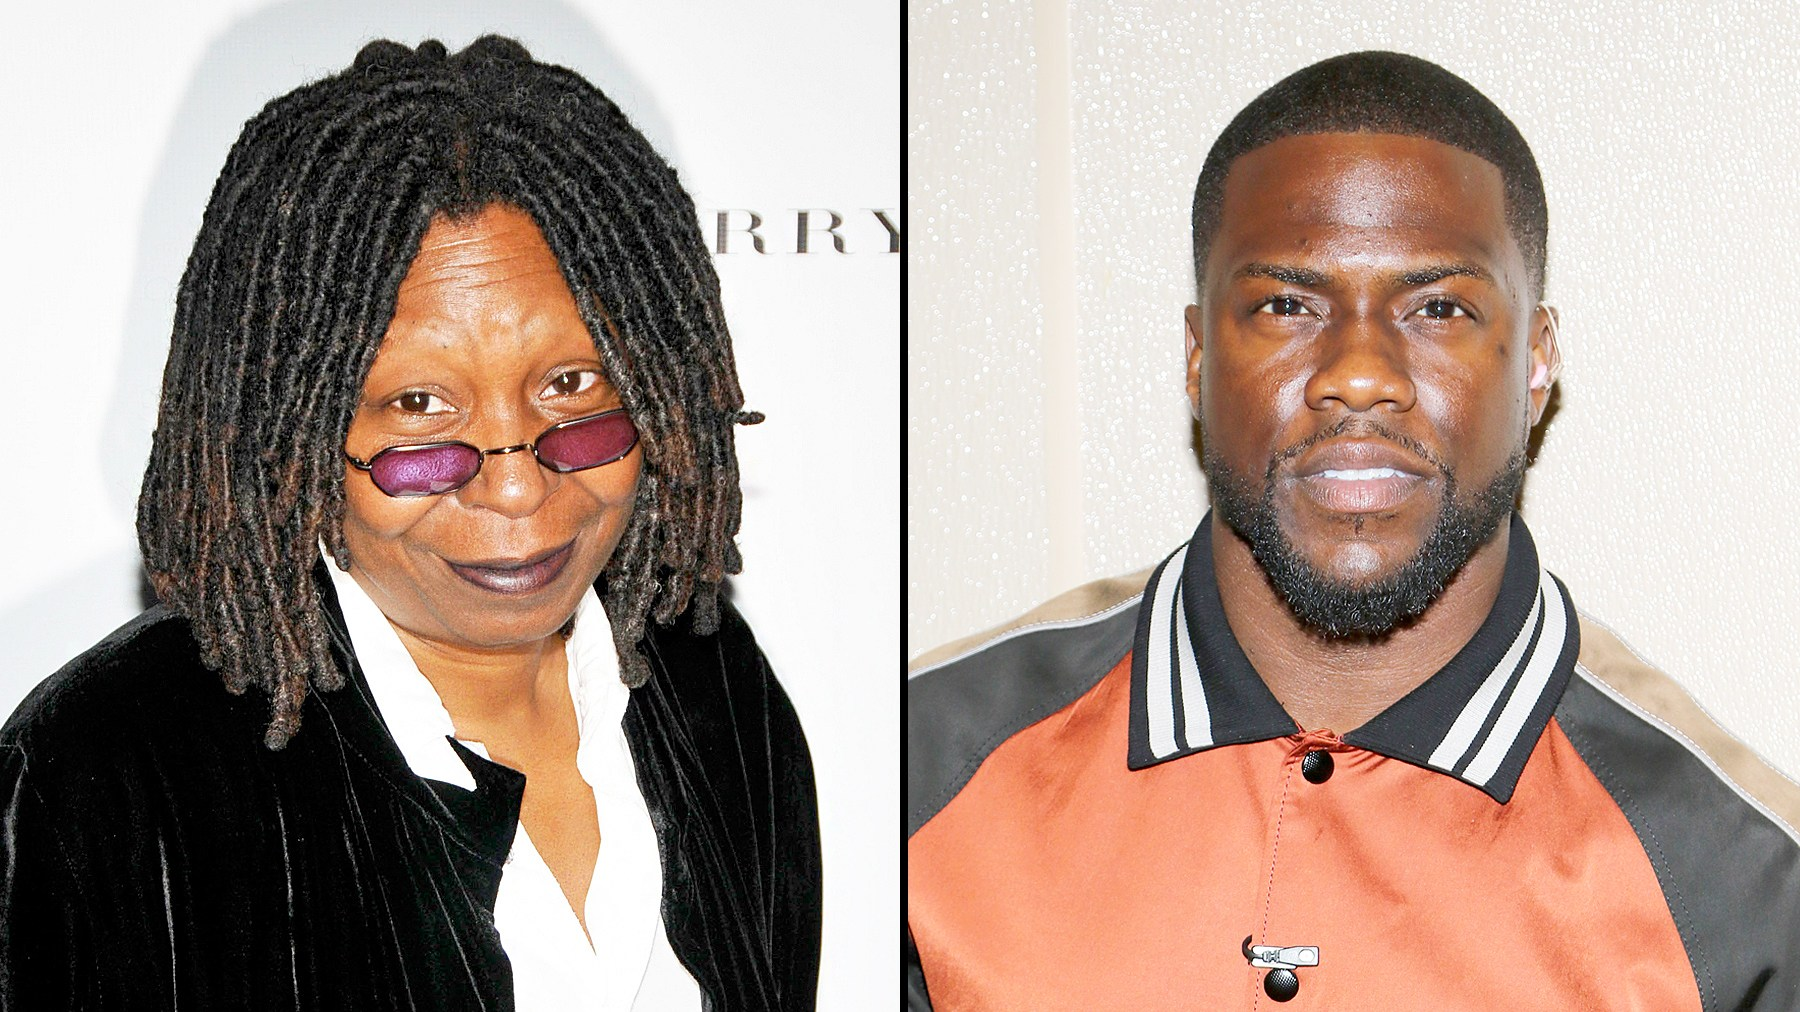 Whoopi Goldberg and Kevin Hart